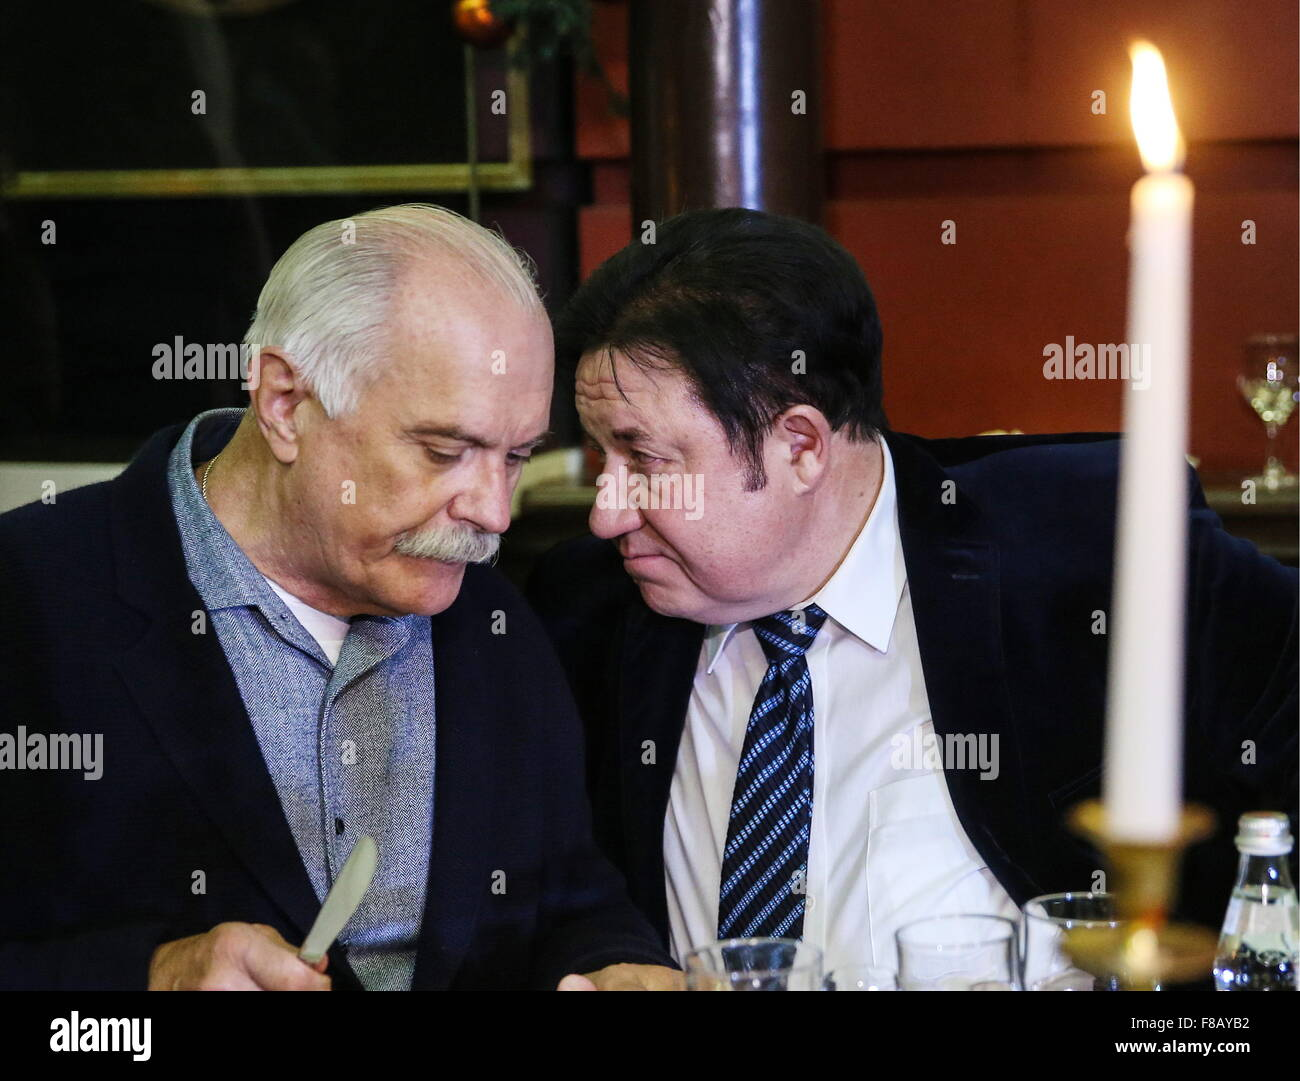 Moscow, Russia. 8th Dec, 2015. Russian film director Nikita Mikhalkov (L) and Alexander Mitroshenkov, President - Stock Image